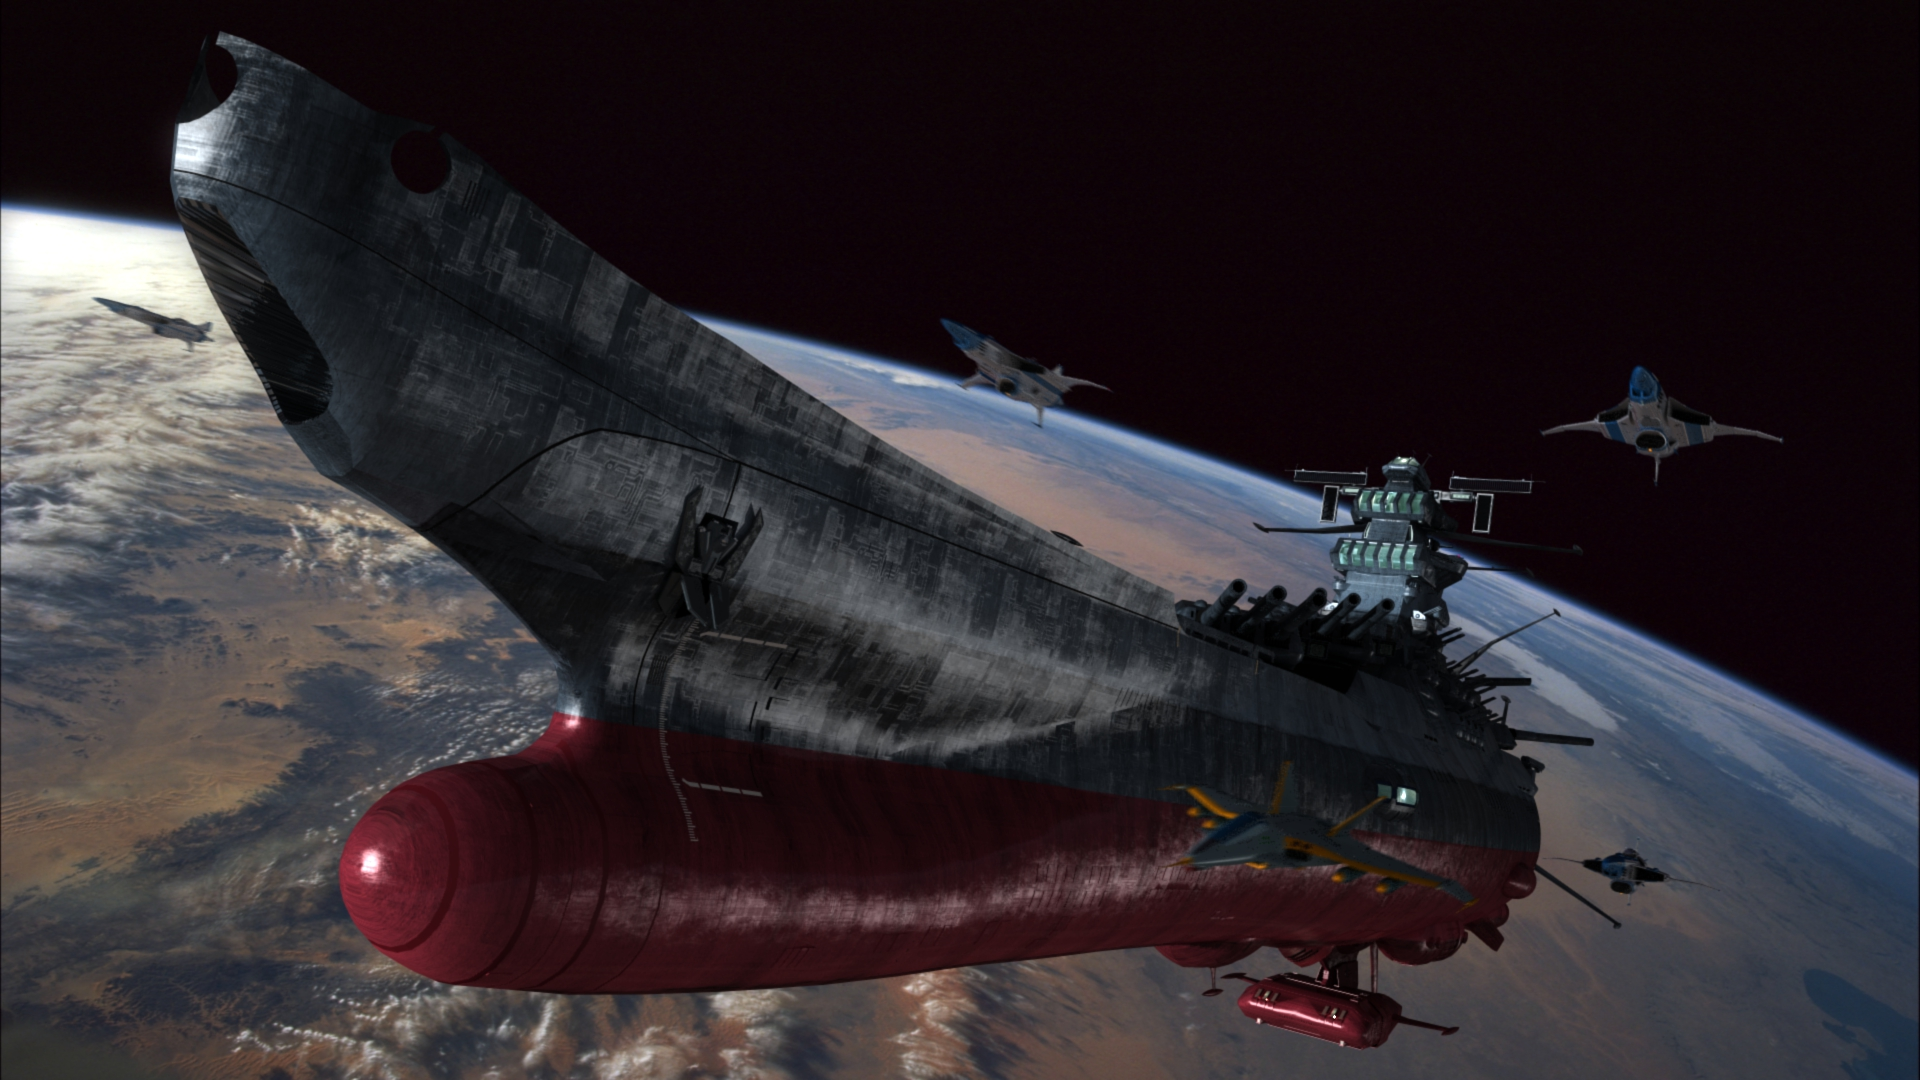 Free Download Image Search Space Battleship Yamato 1920x1080 For